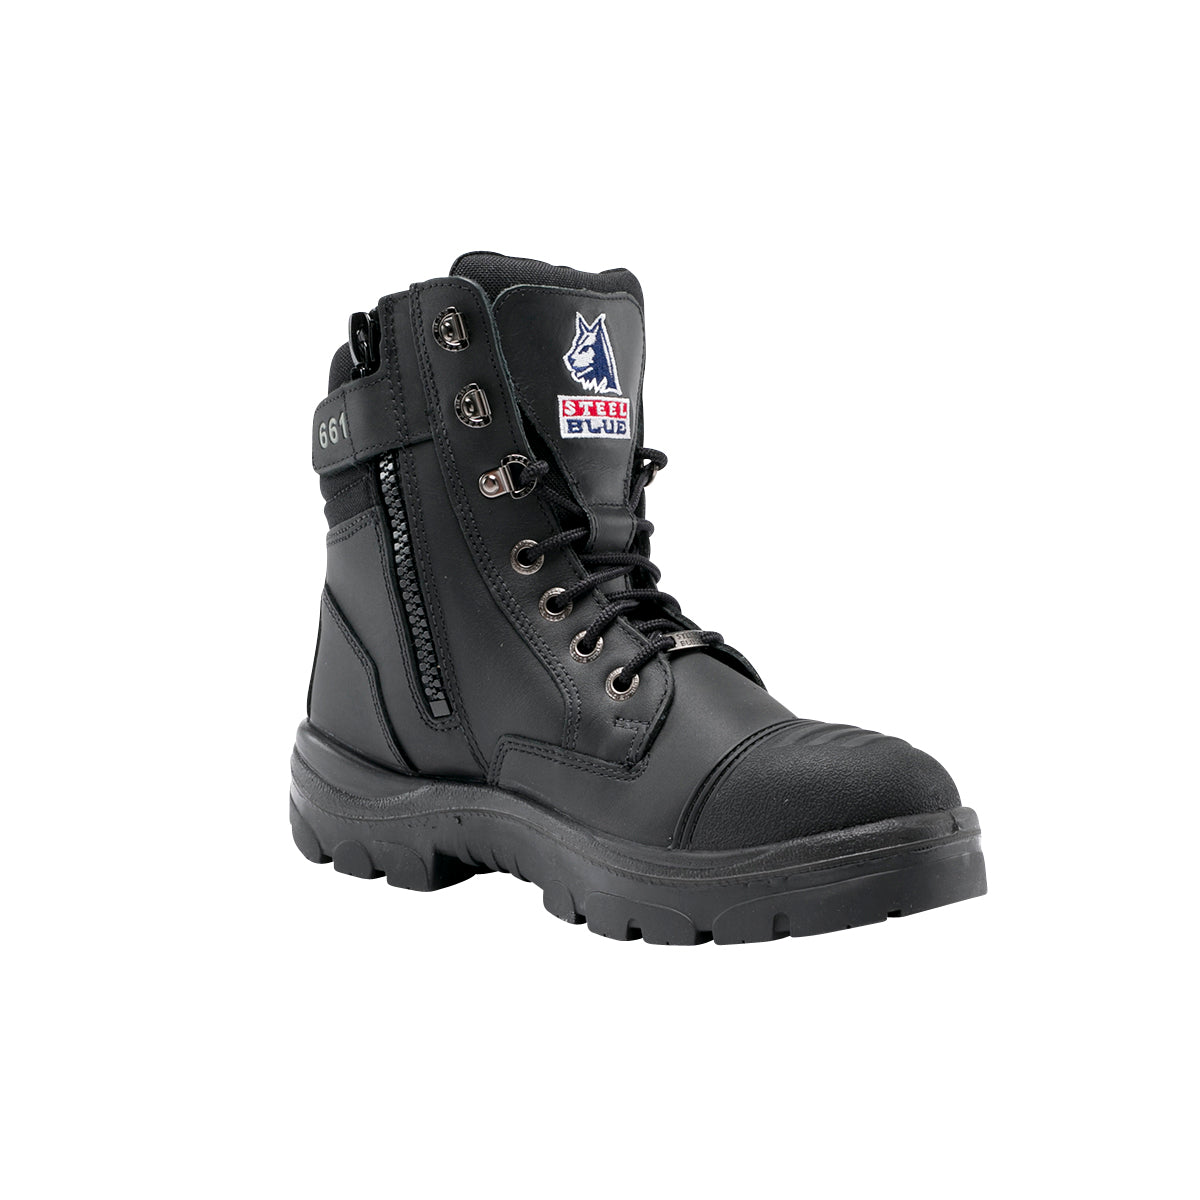 Steel Blue 312661 - Southern Cross Zip Sided Boot with Scuff Cap